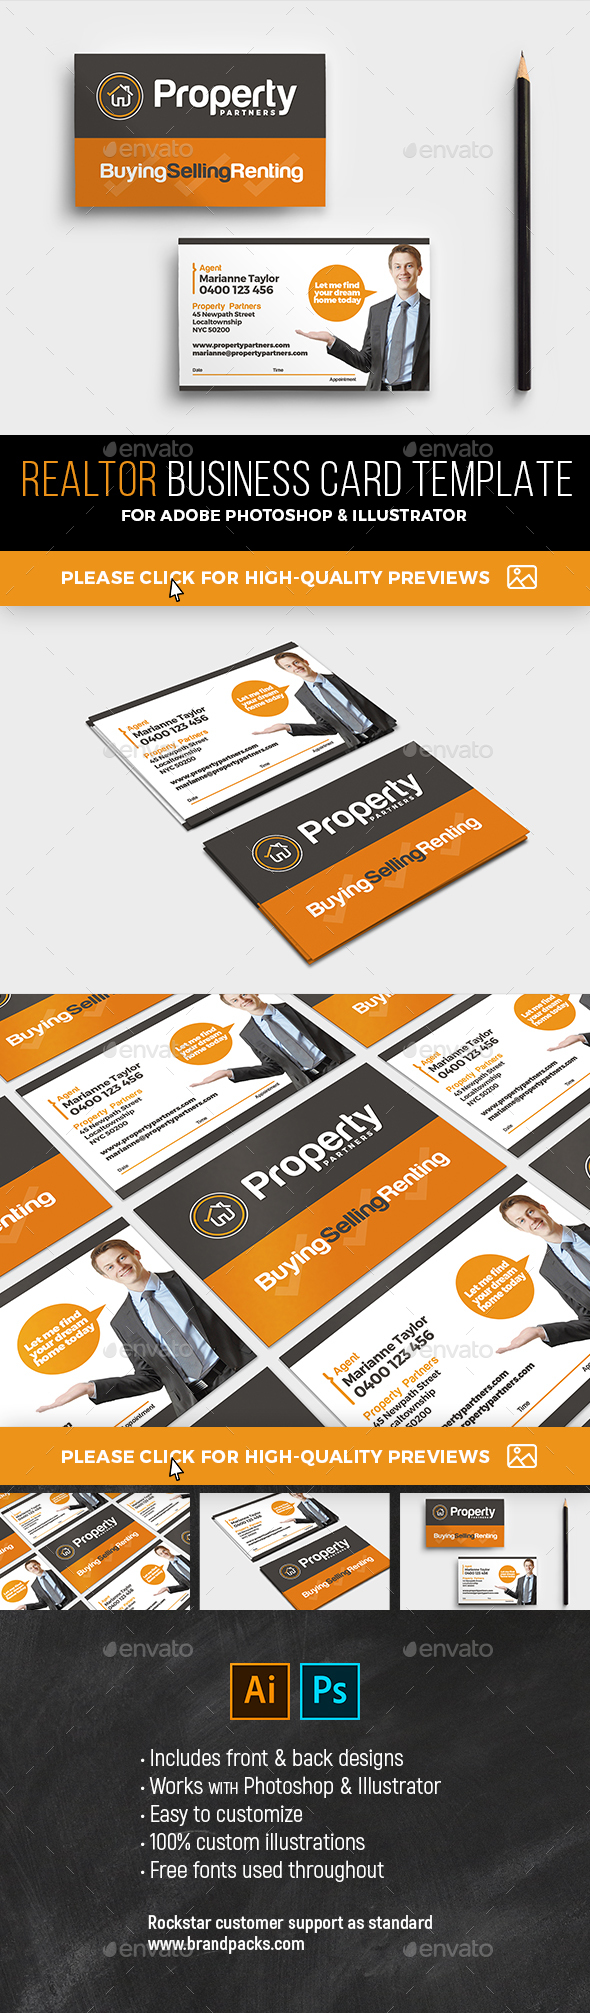 Realtor business card template choice image templates example realtor business card template by brandpacks graphicriver realtor business card template industry specific business cards alramifo alramifo Gallery